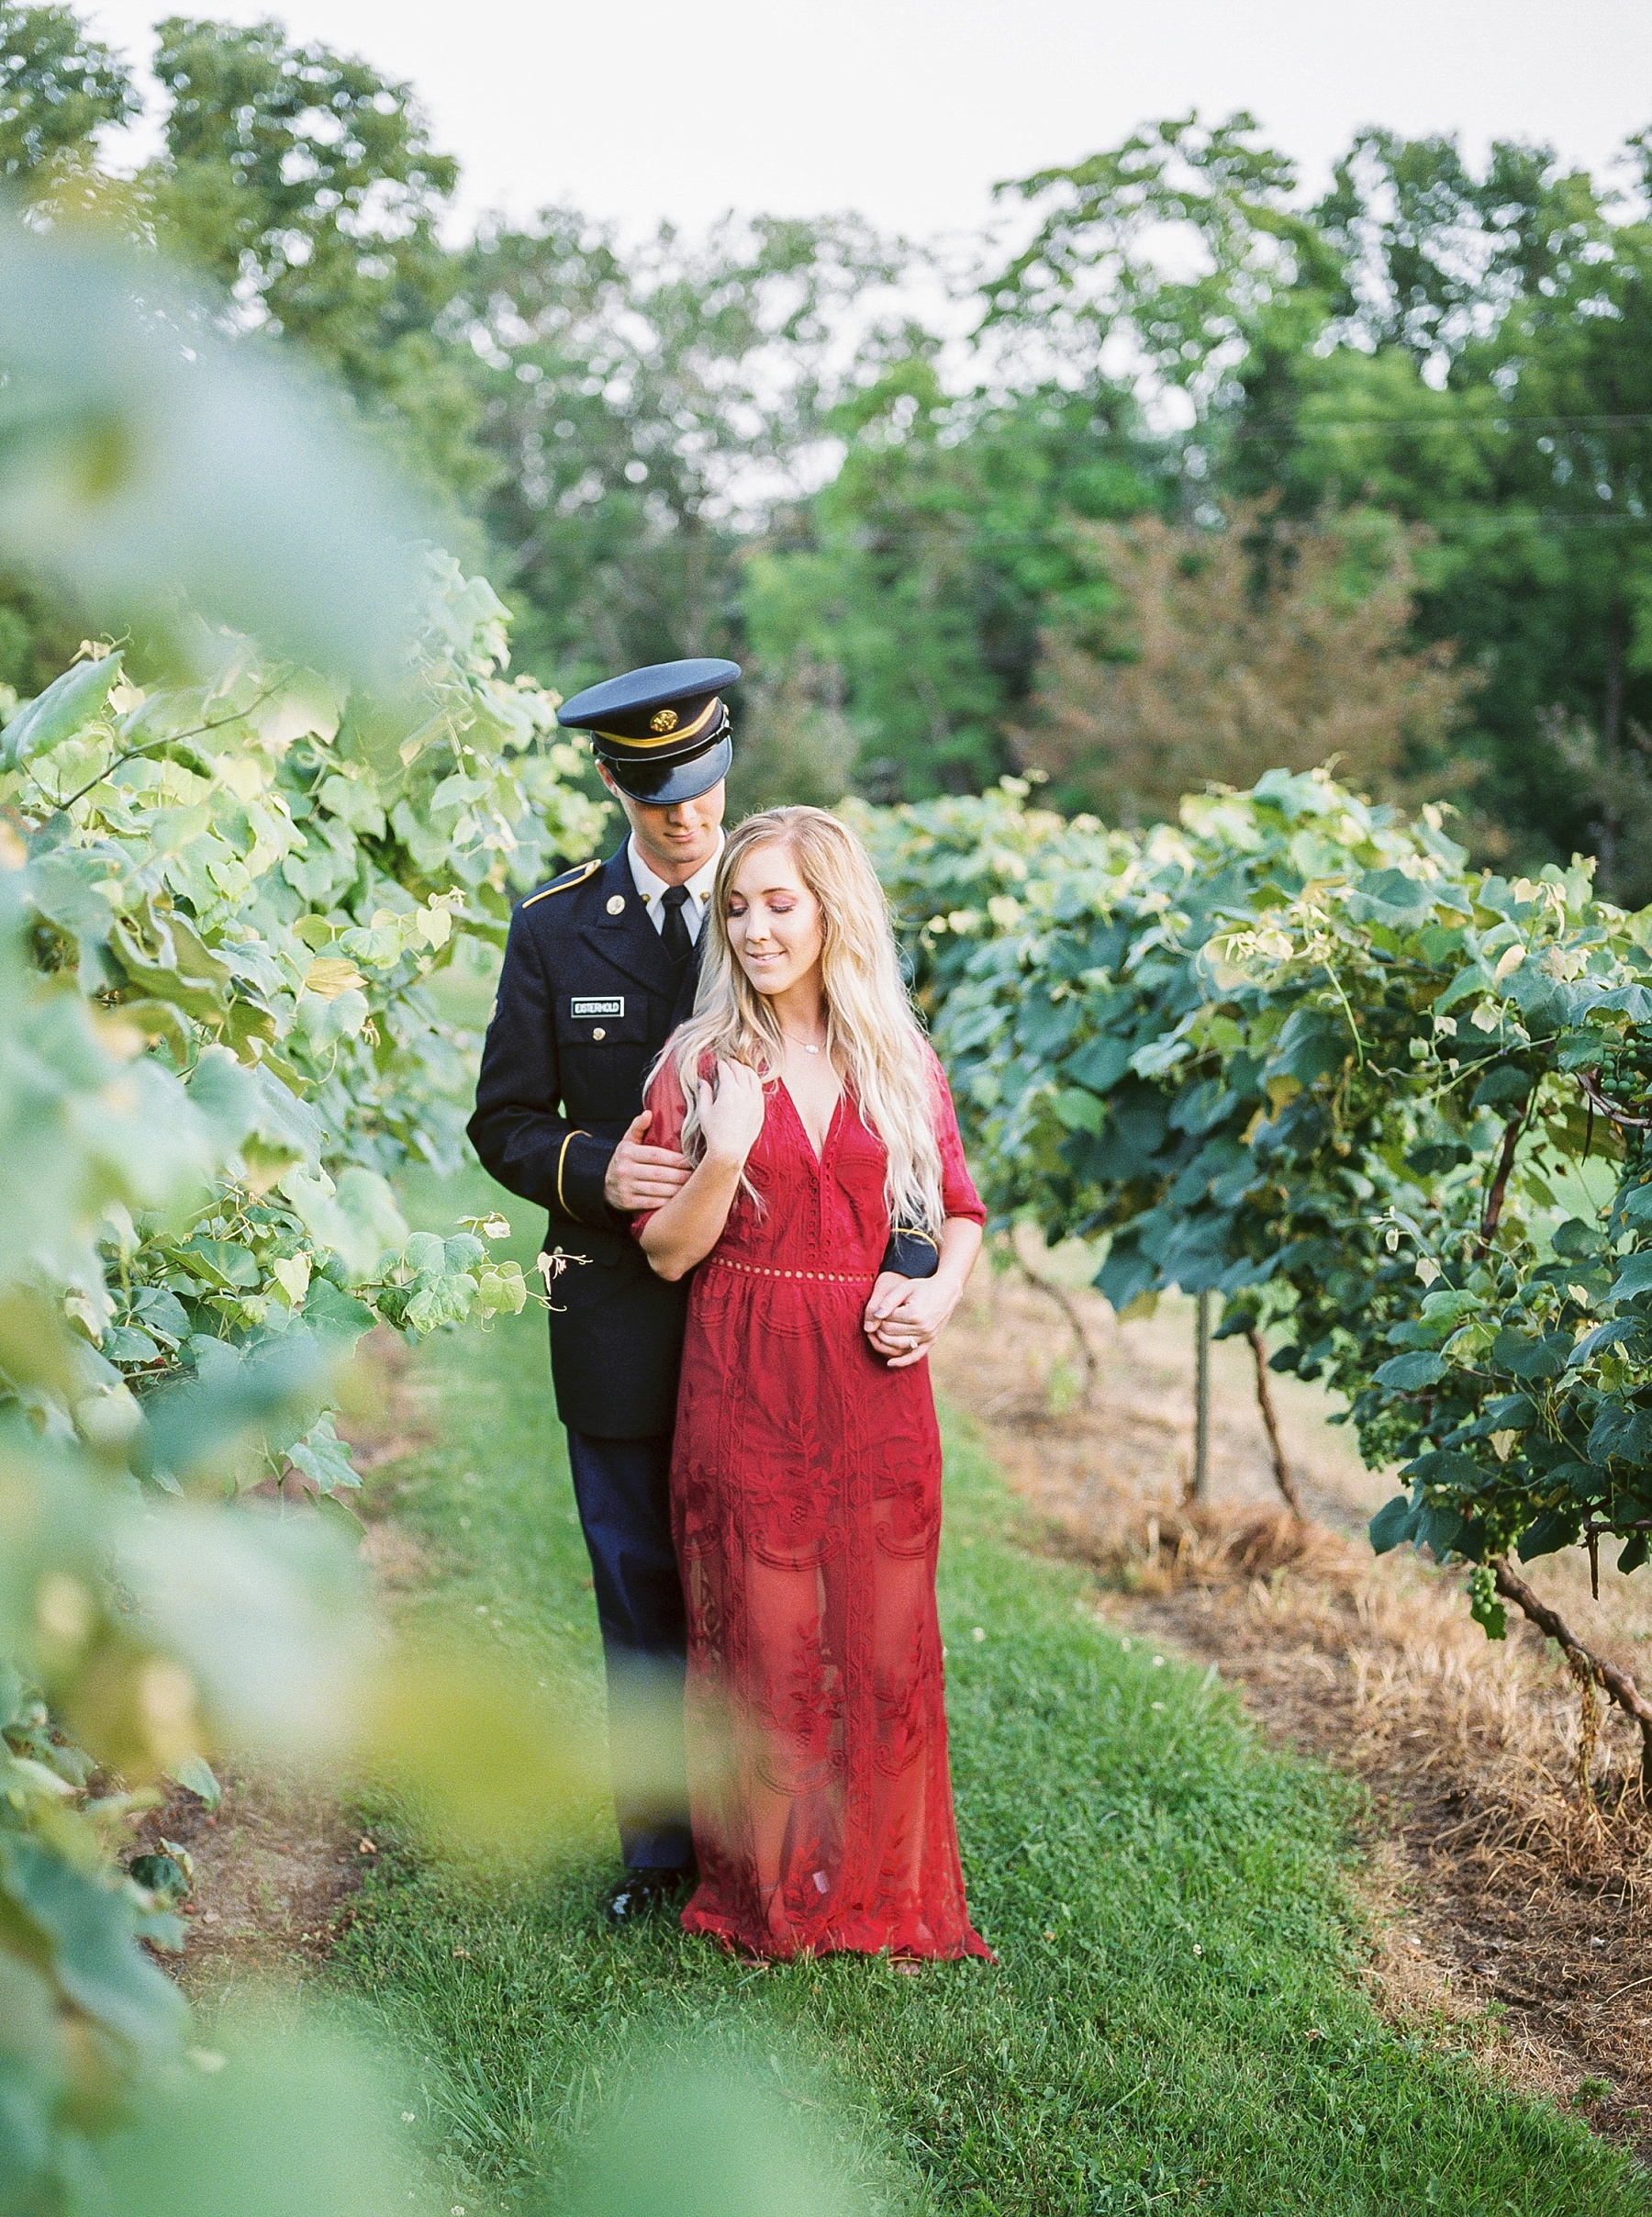 Golden Hour Summer Engagement Session at Lakeside Valley and Vineyards at Kempkers Back 40 by Kelsi Kliethermes Photography Best Missouri and Maui Wedding Photographer_0020.jpg